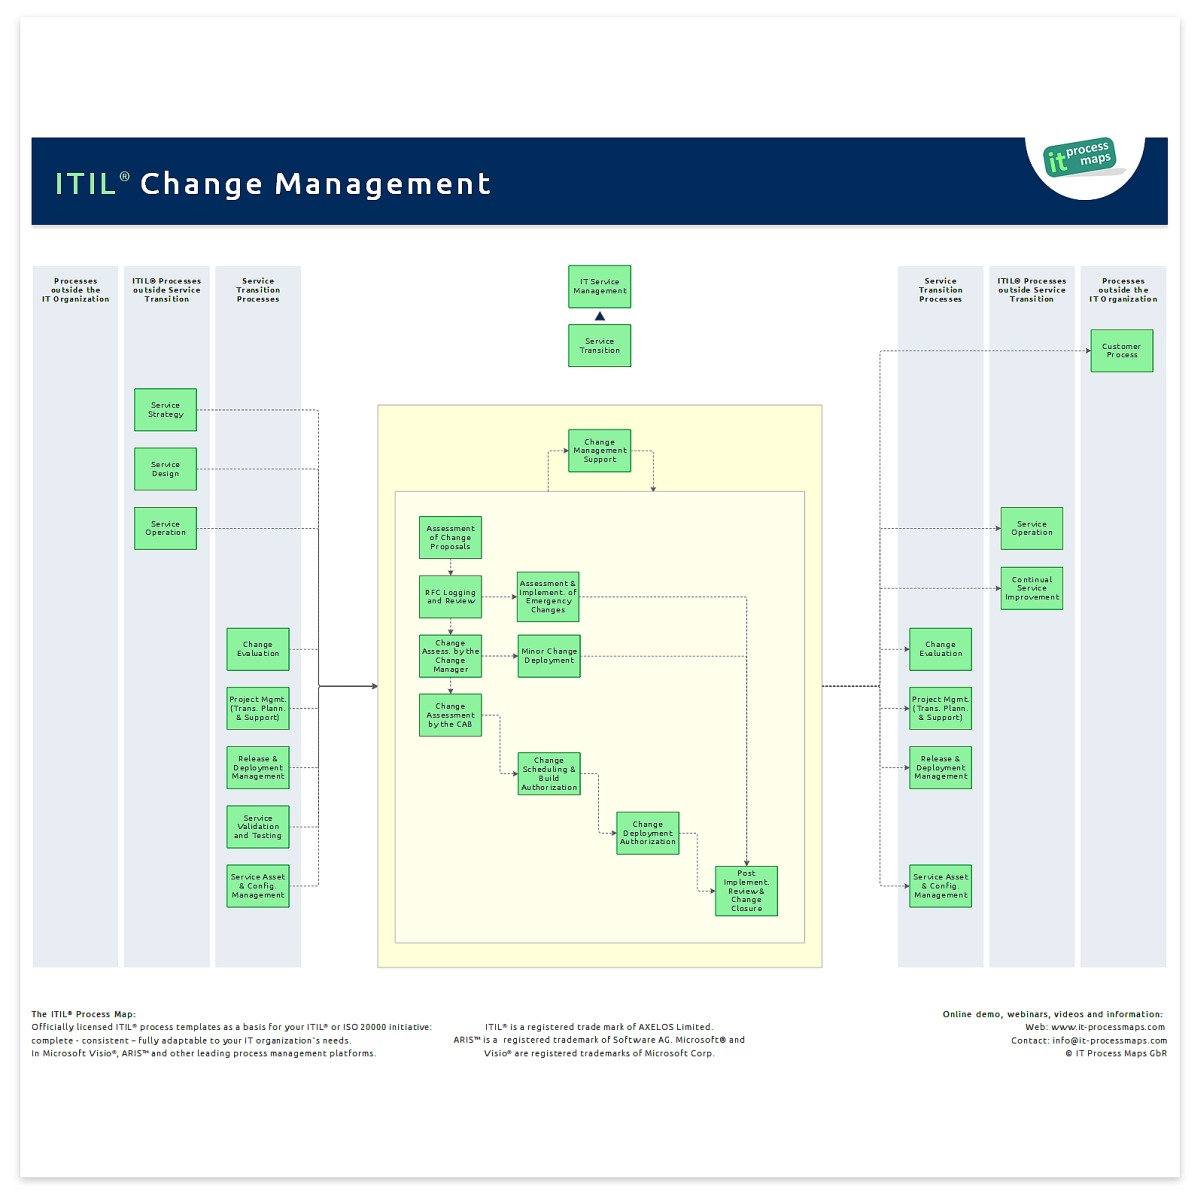 Change management it process wiki the process overview of itil change management pronofoot35fo Choice Image